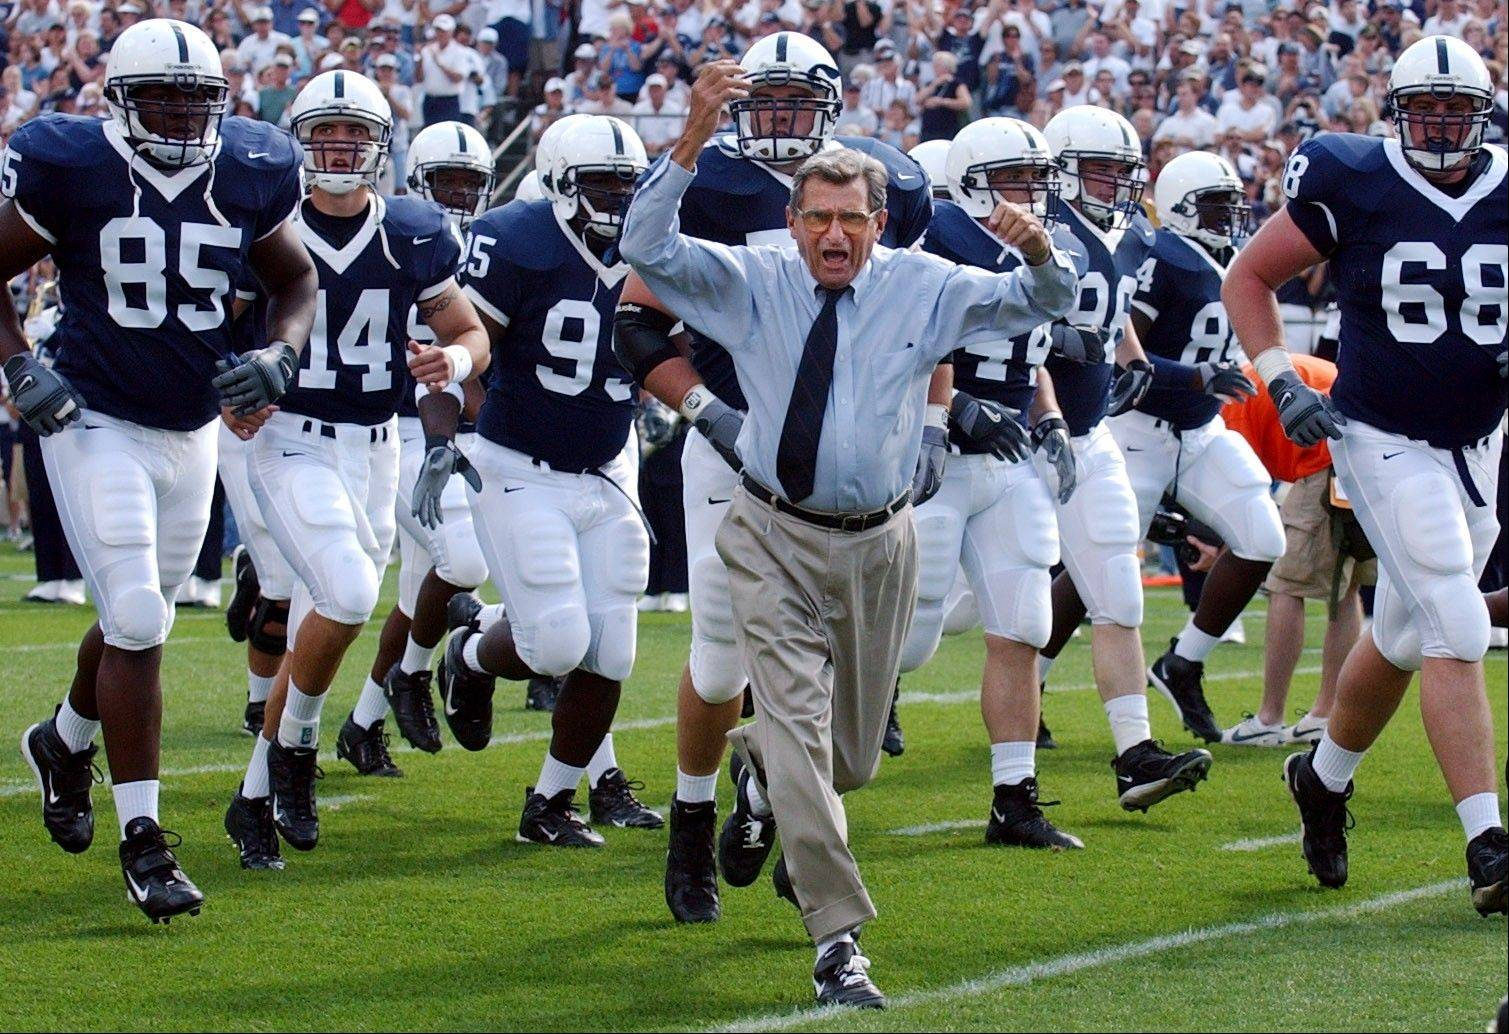 In this Sept. 4, 2004 file photo, Penn State coach Joe Paterno leads his team onto the field before an NCAA college football game against Akron in State College, Pa. The legendary college football coach was disgraced for concealing child sex abuse allegations against a retired assistant coach for years to avoid bad publicity.